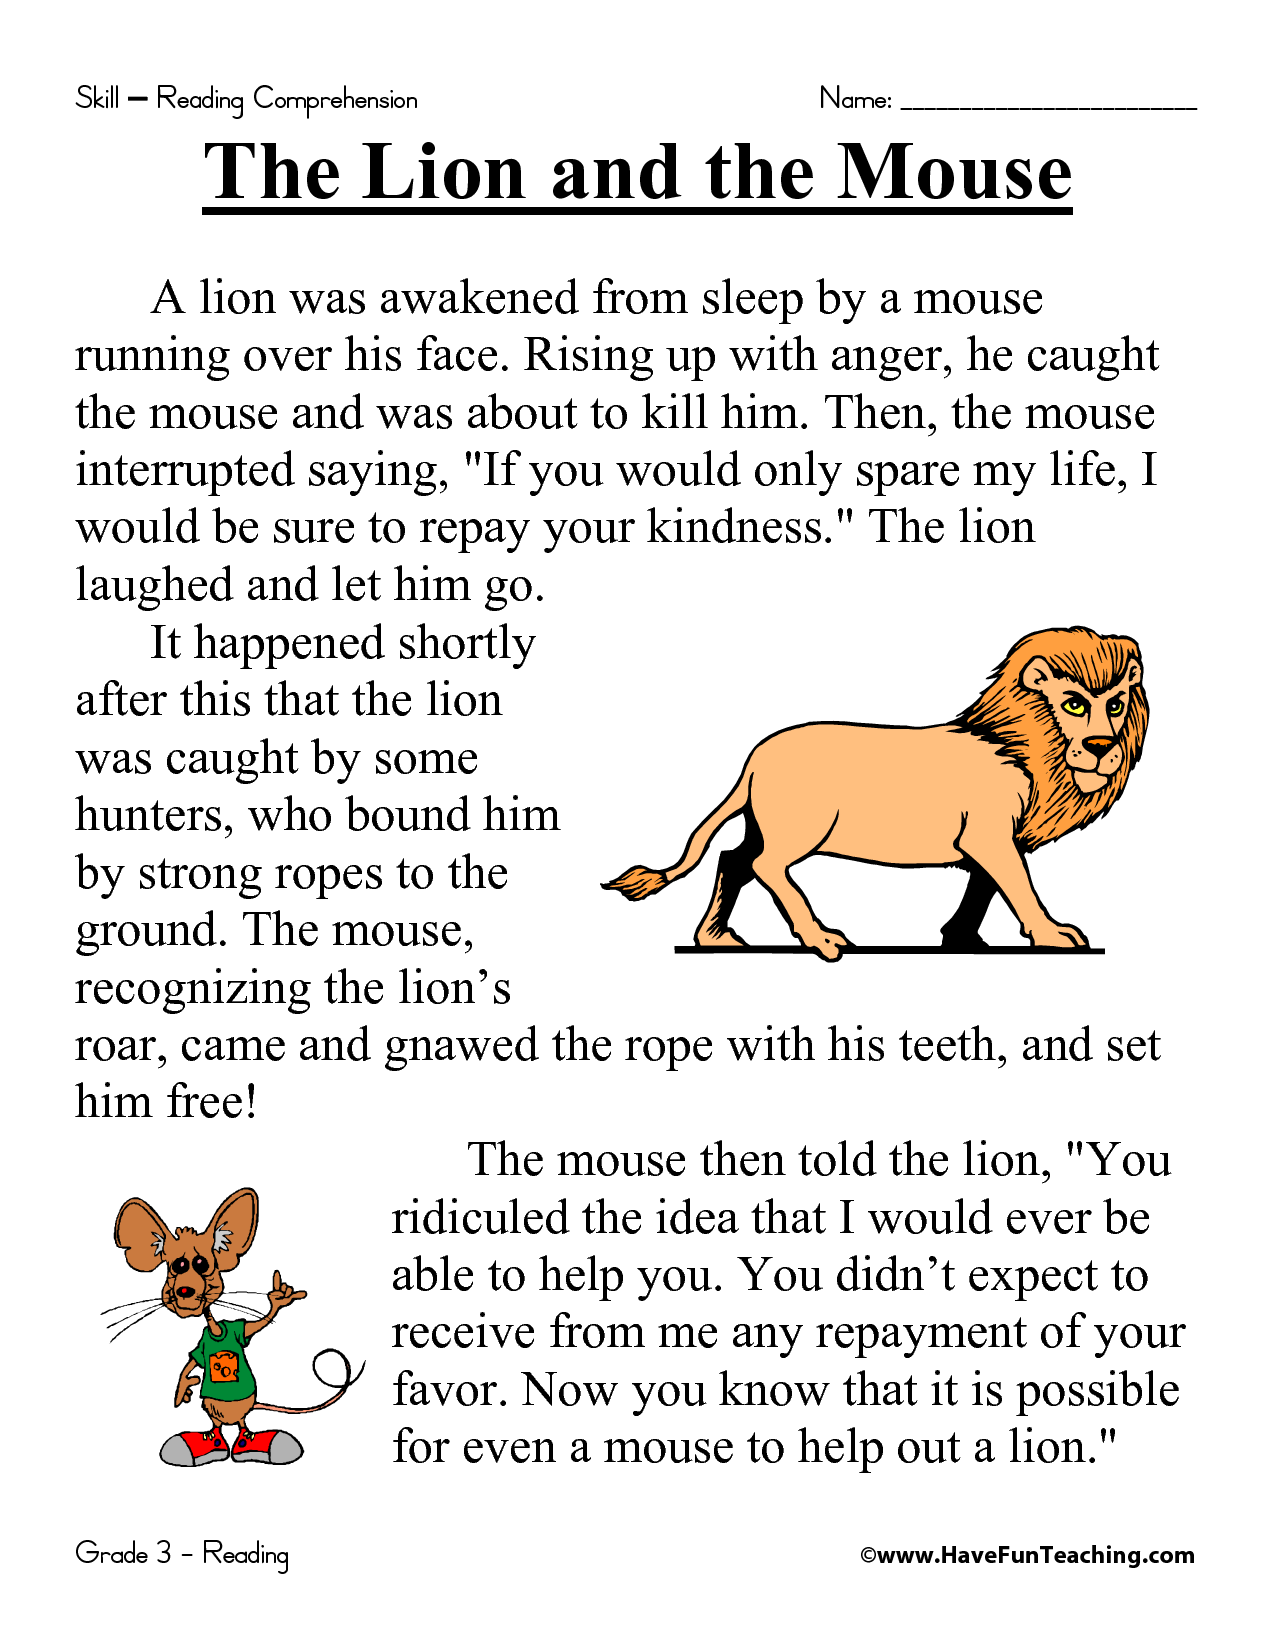 Free Worksheet Free Comprehension Worksheets For Grade 1 printable reading comprehension worksheets inc exercises for first grade the lion and mouse worksheet